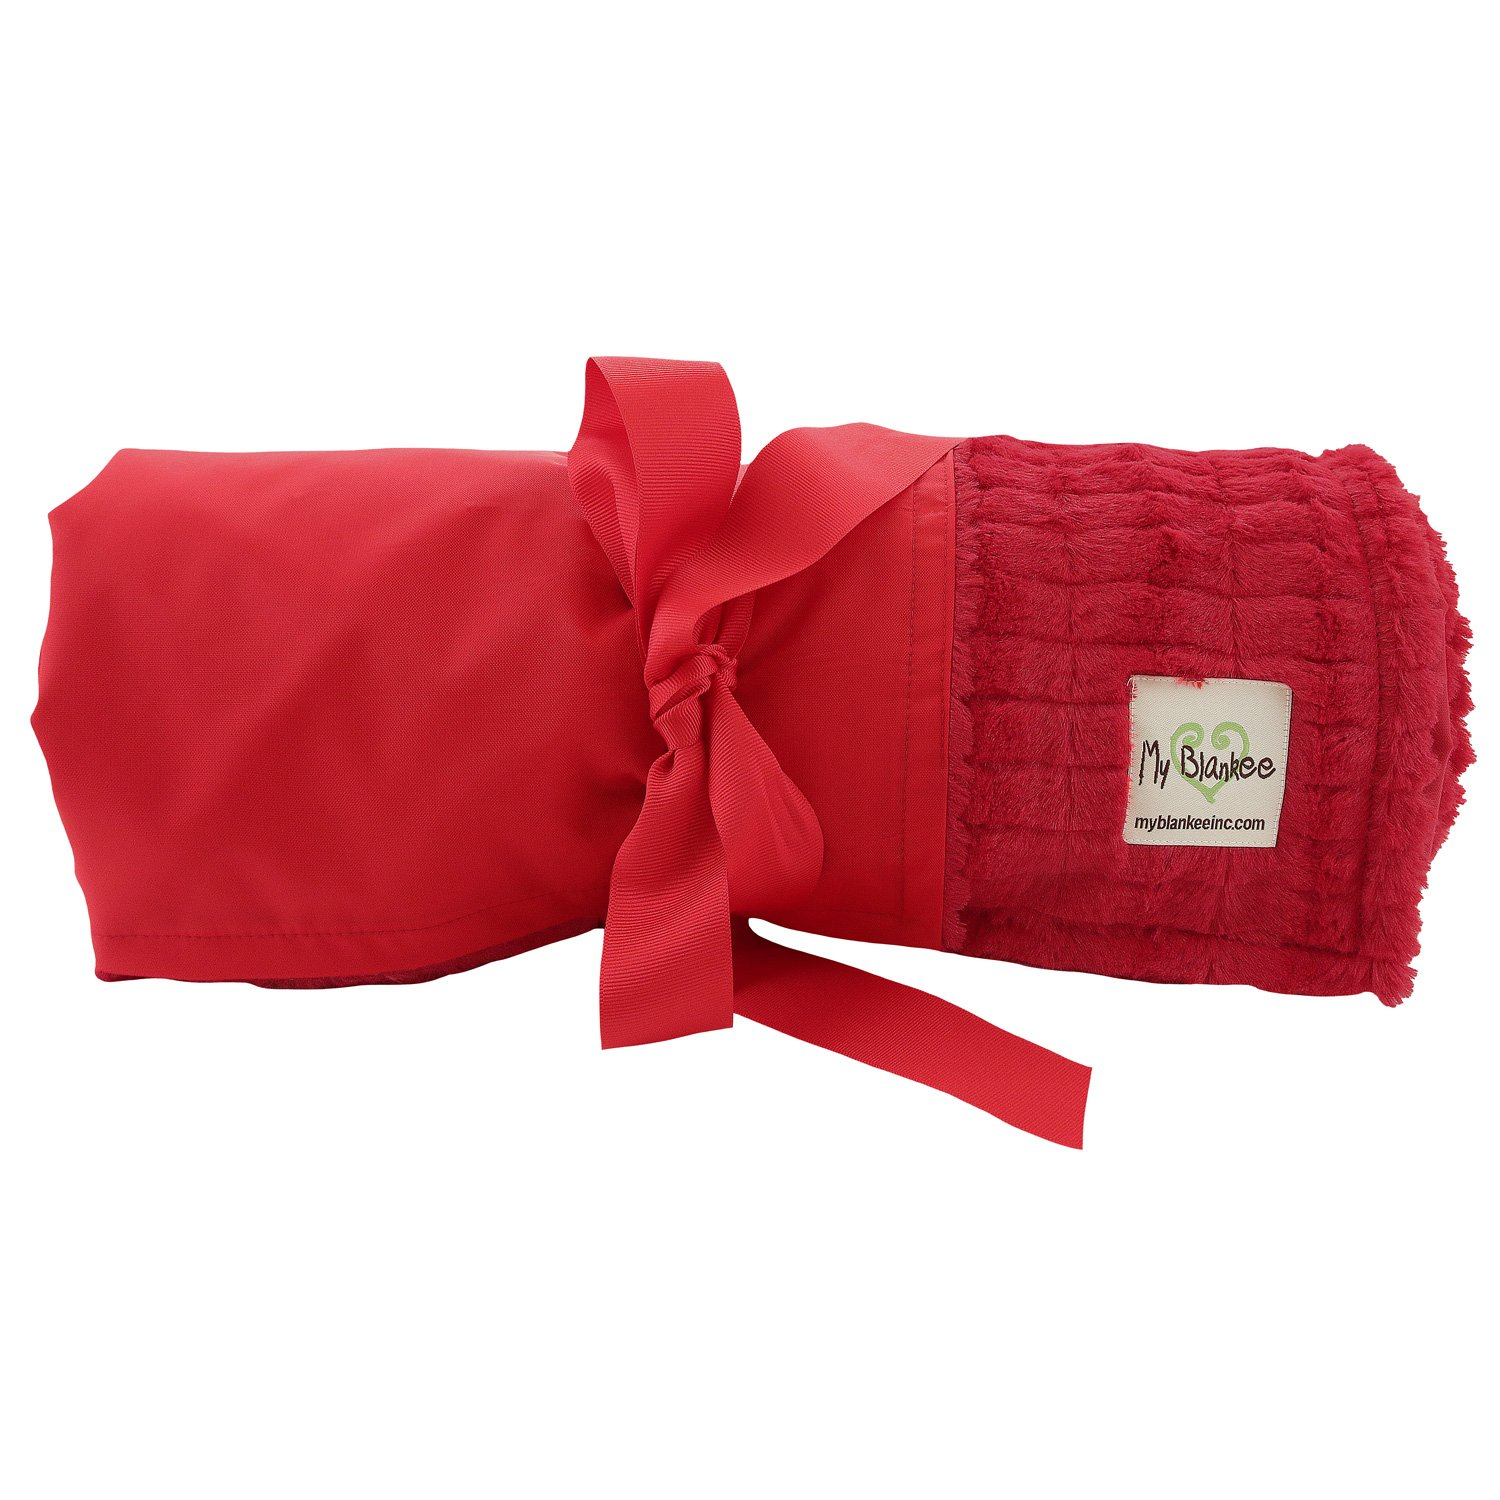 My Blankee Extra Large Picnic & Outdoor Blanket Warm and Soft Luxe Stipe with Waterproof Backing, Red, 59'' X 85''